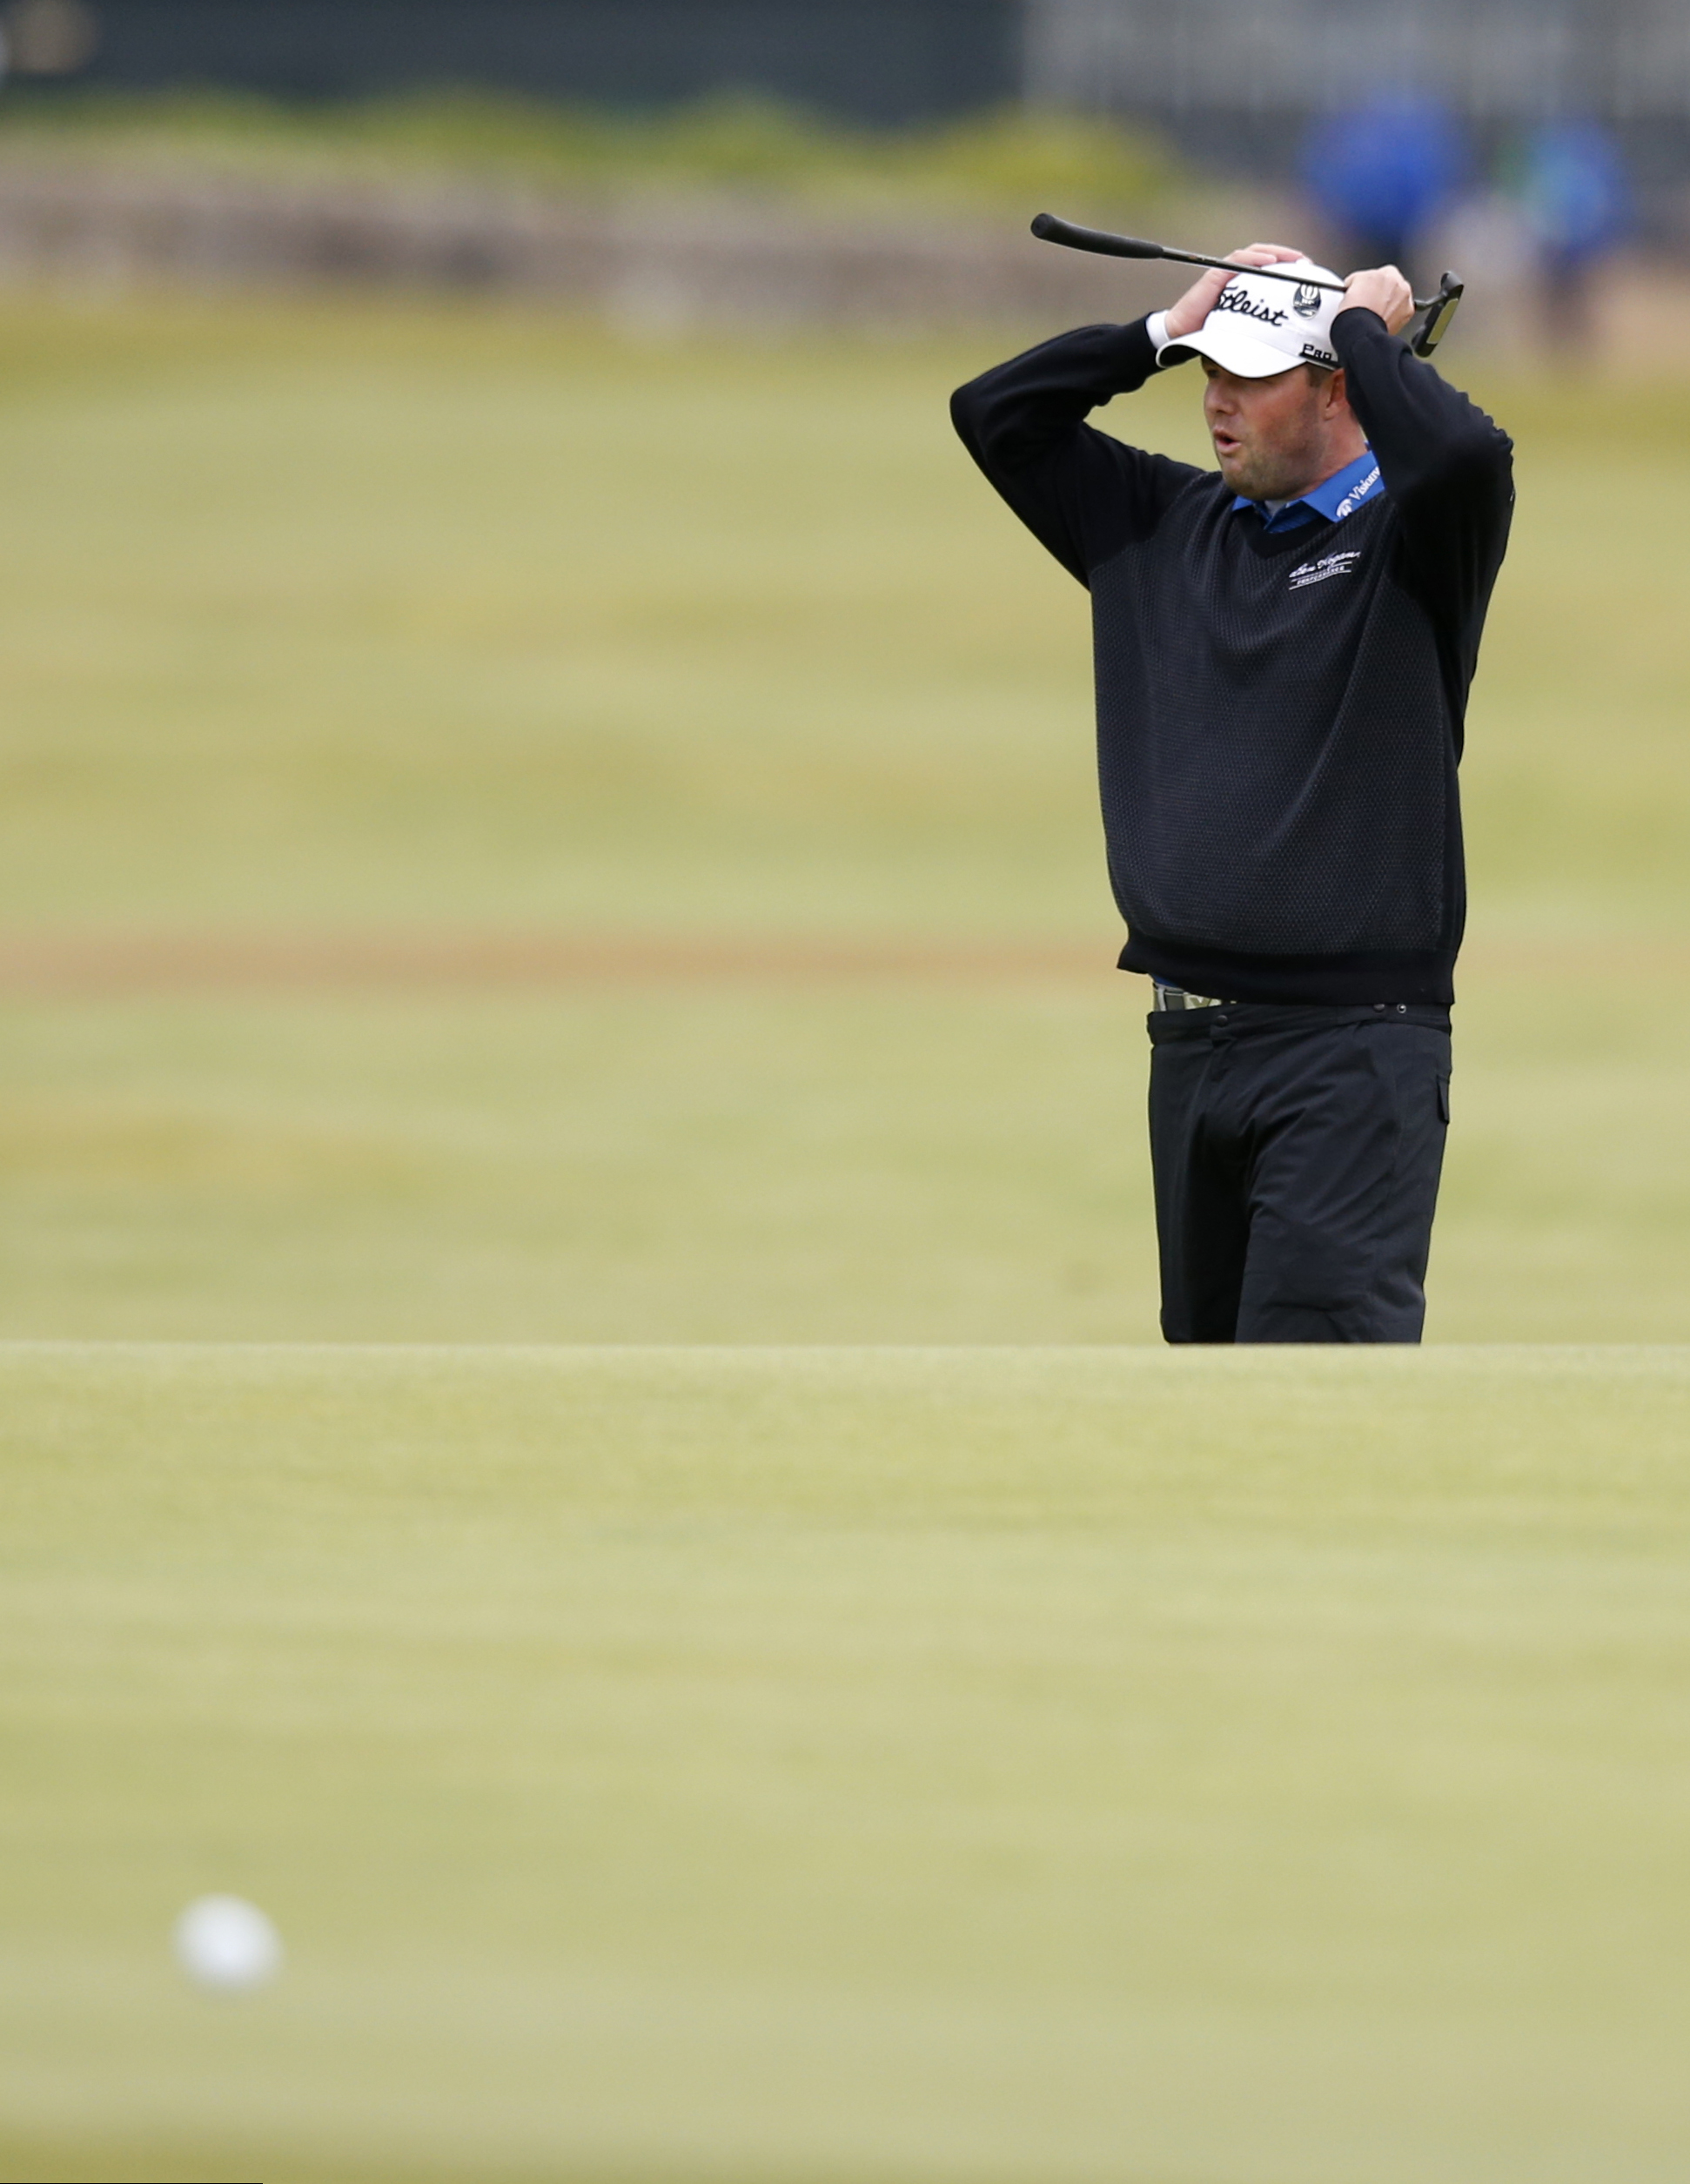 Australia's Marc Leishman reacts after missing a putt on the 17th during the final round at the British Open Golf Championship at the Old Course, St. Andrews, Scotland, Monday, July 20, 2015. (AP Photo/Jon Super)